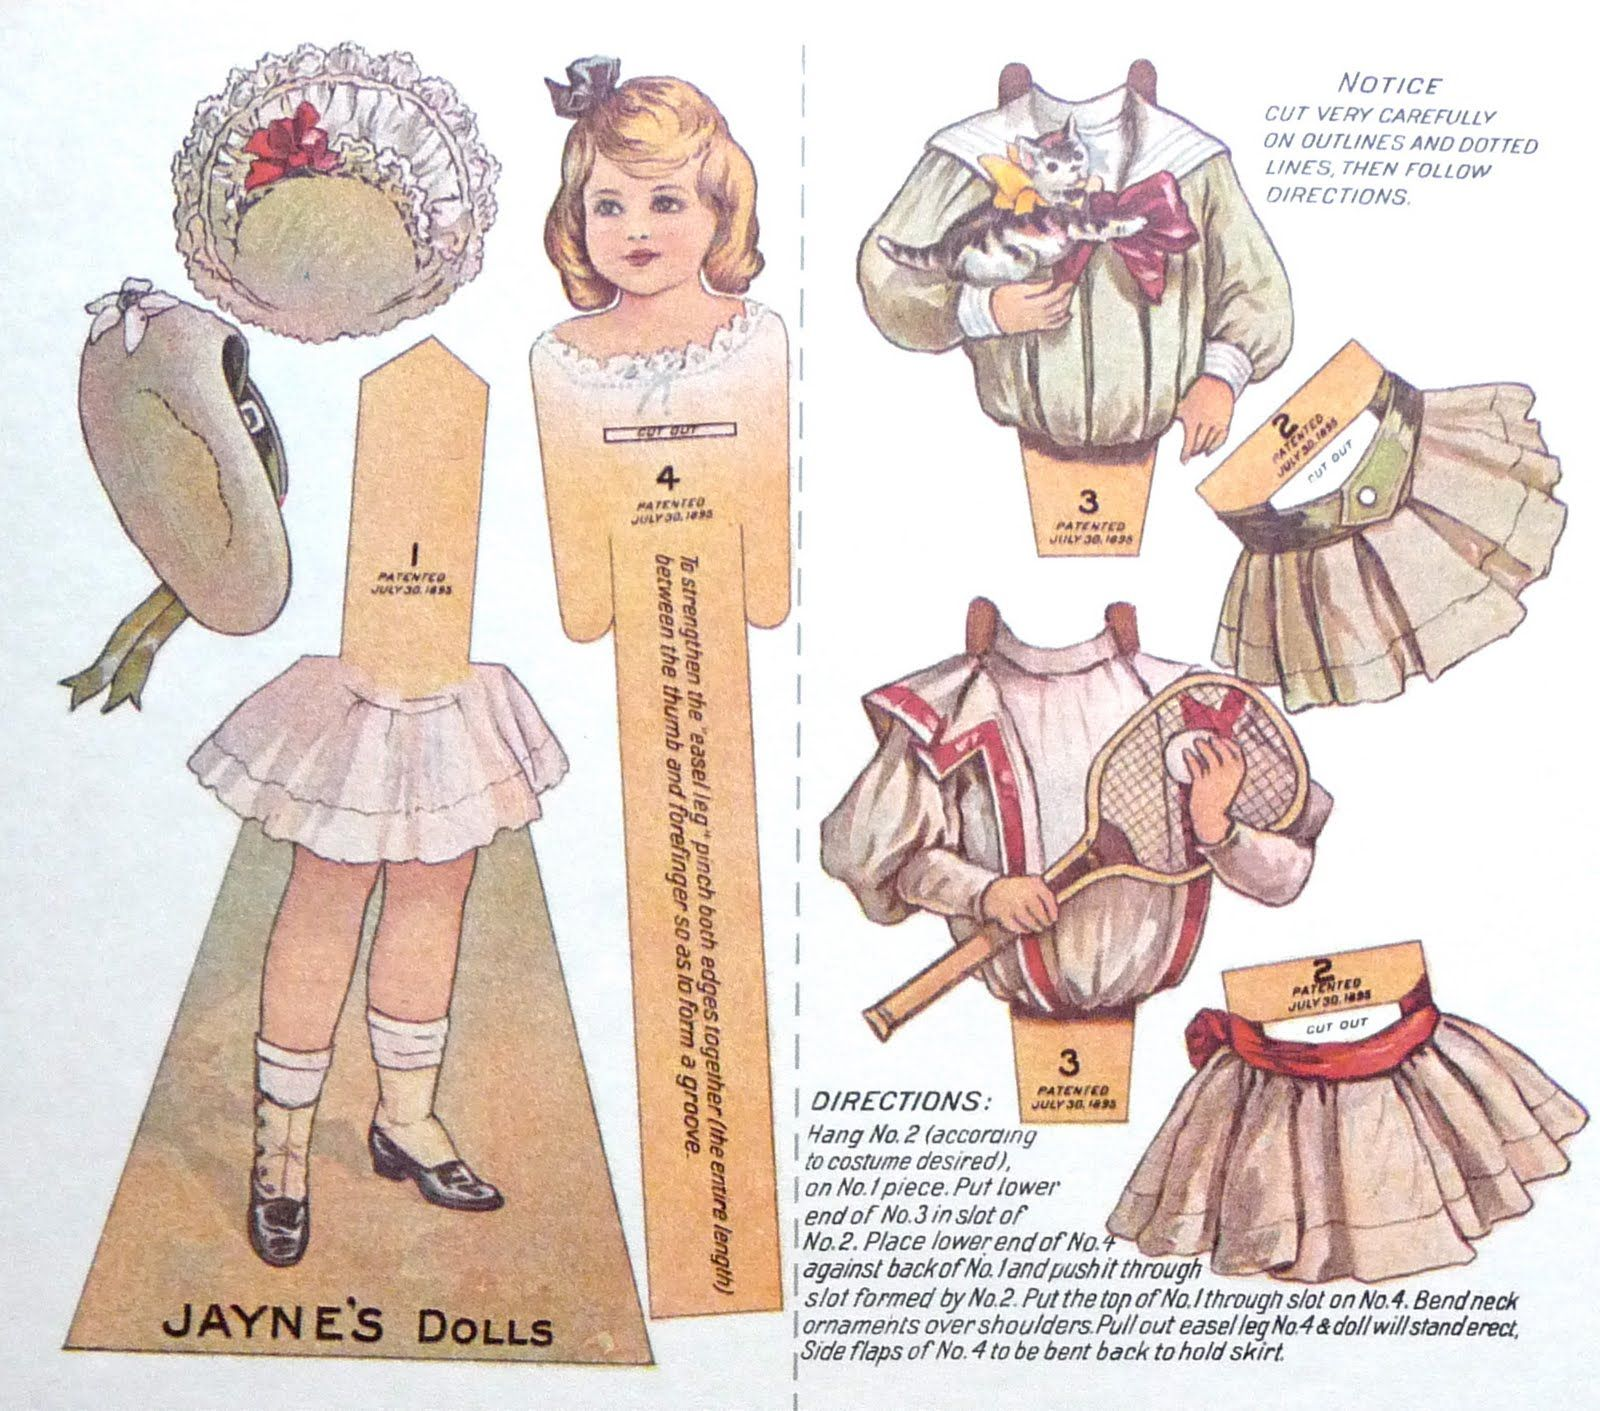 Lovely old-fashioned paper dolls to cut out for play or collage!